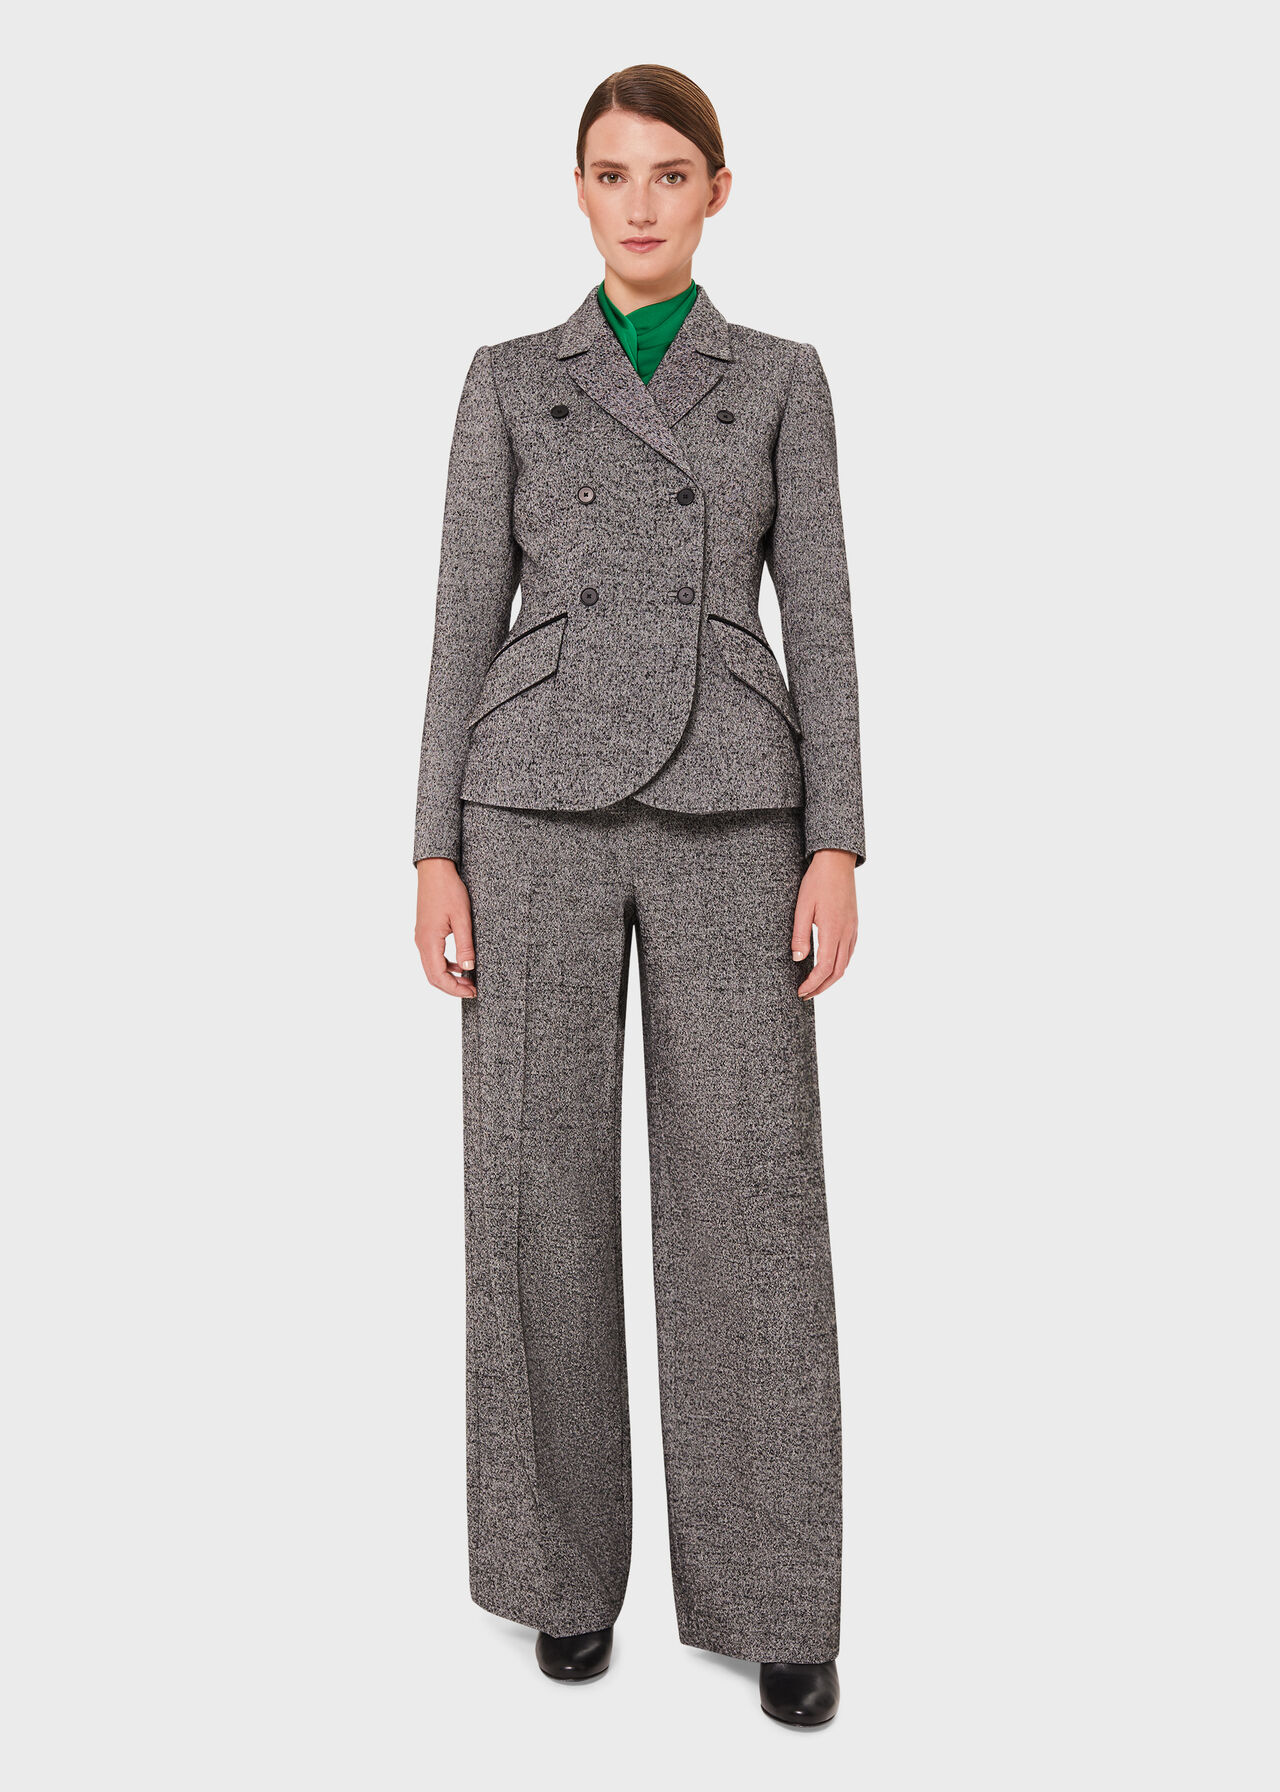 Ida Co-ord Trouser Suit, , hi-res